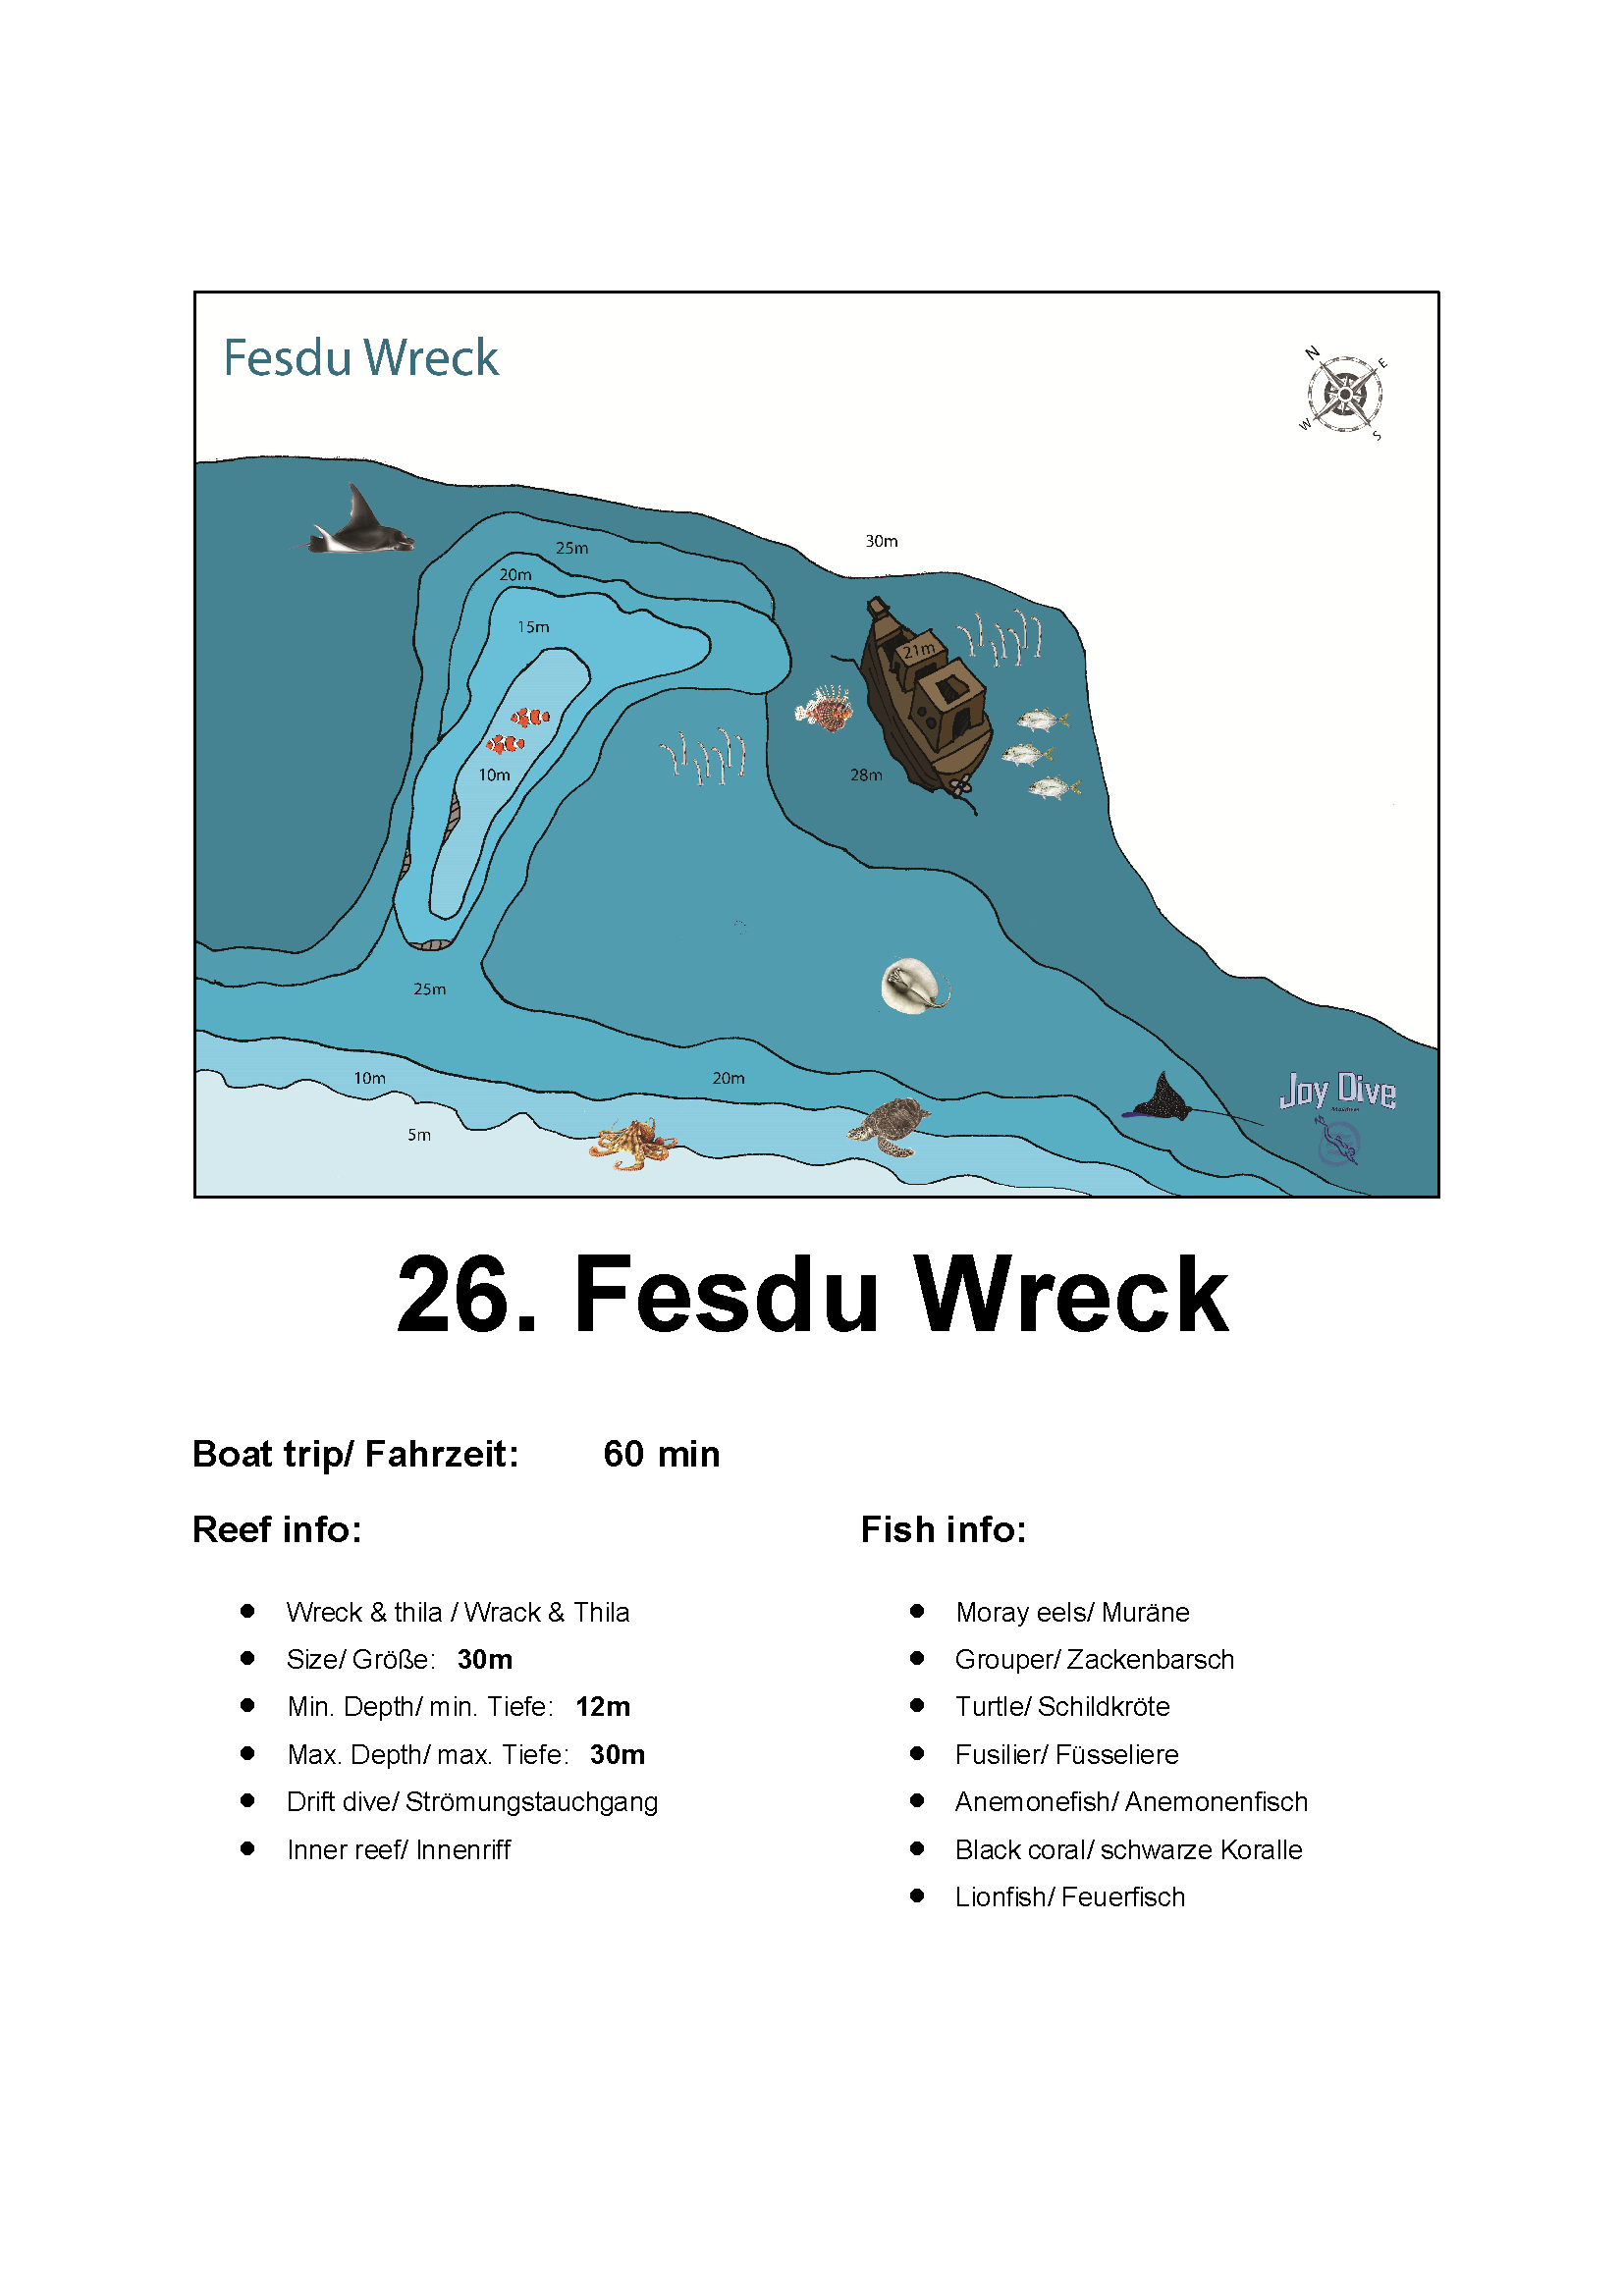 FesduWreck